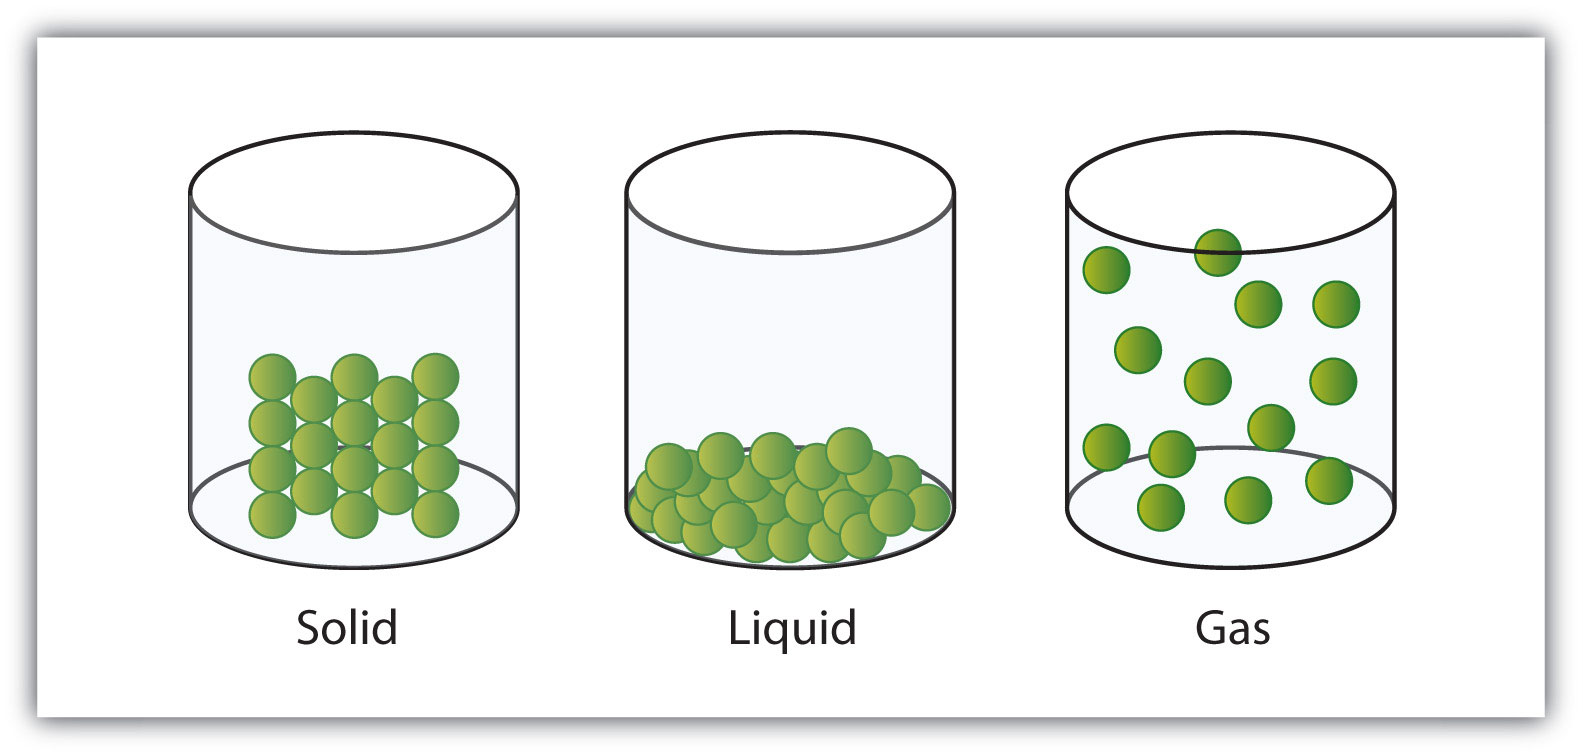 http://2012books.lardbucket.org/books/introduction-to-chemistry-general-organic-and-biological/s11-02-solids-and-liquids.html